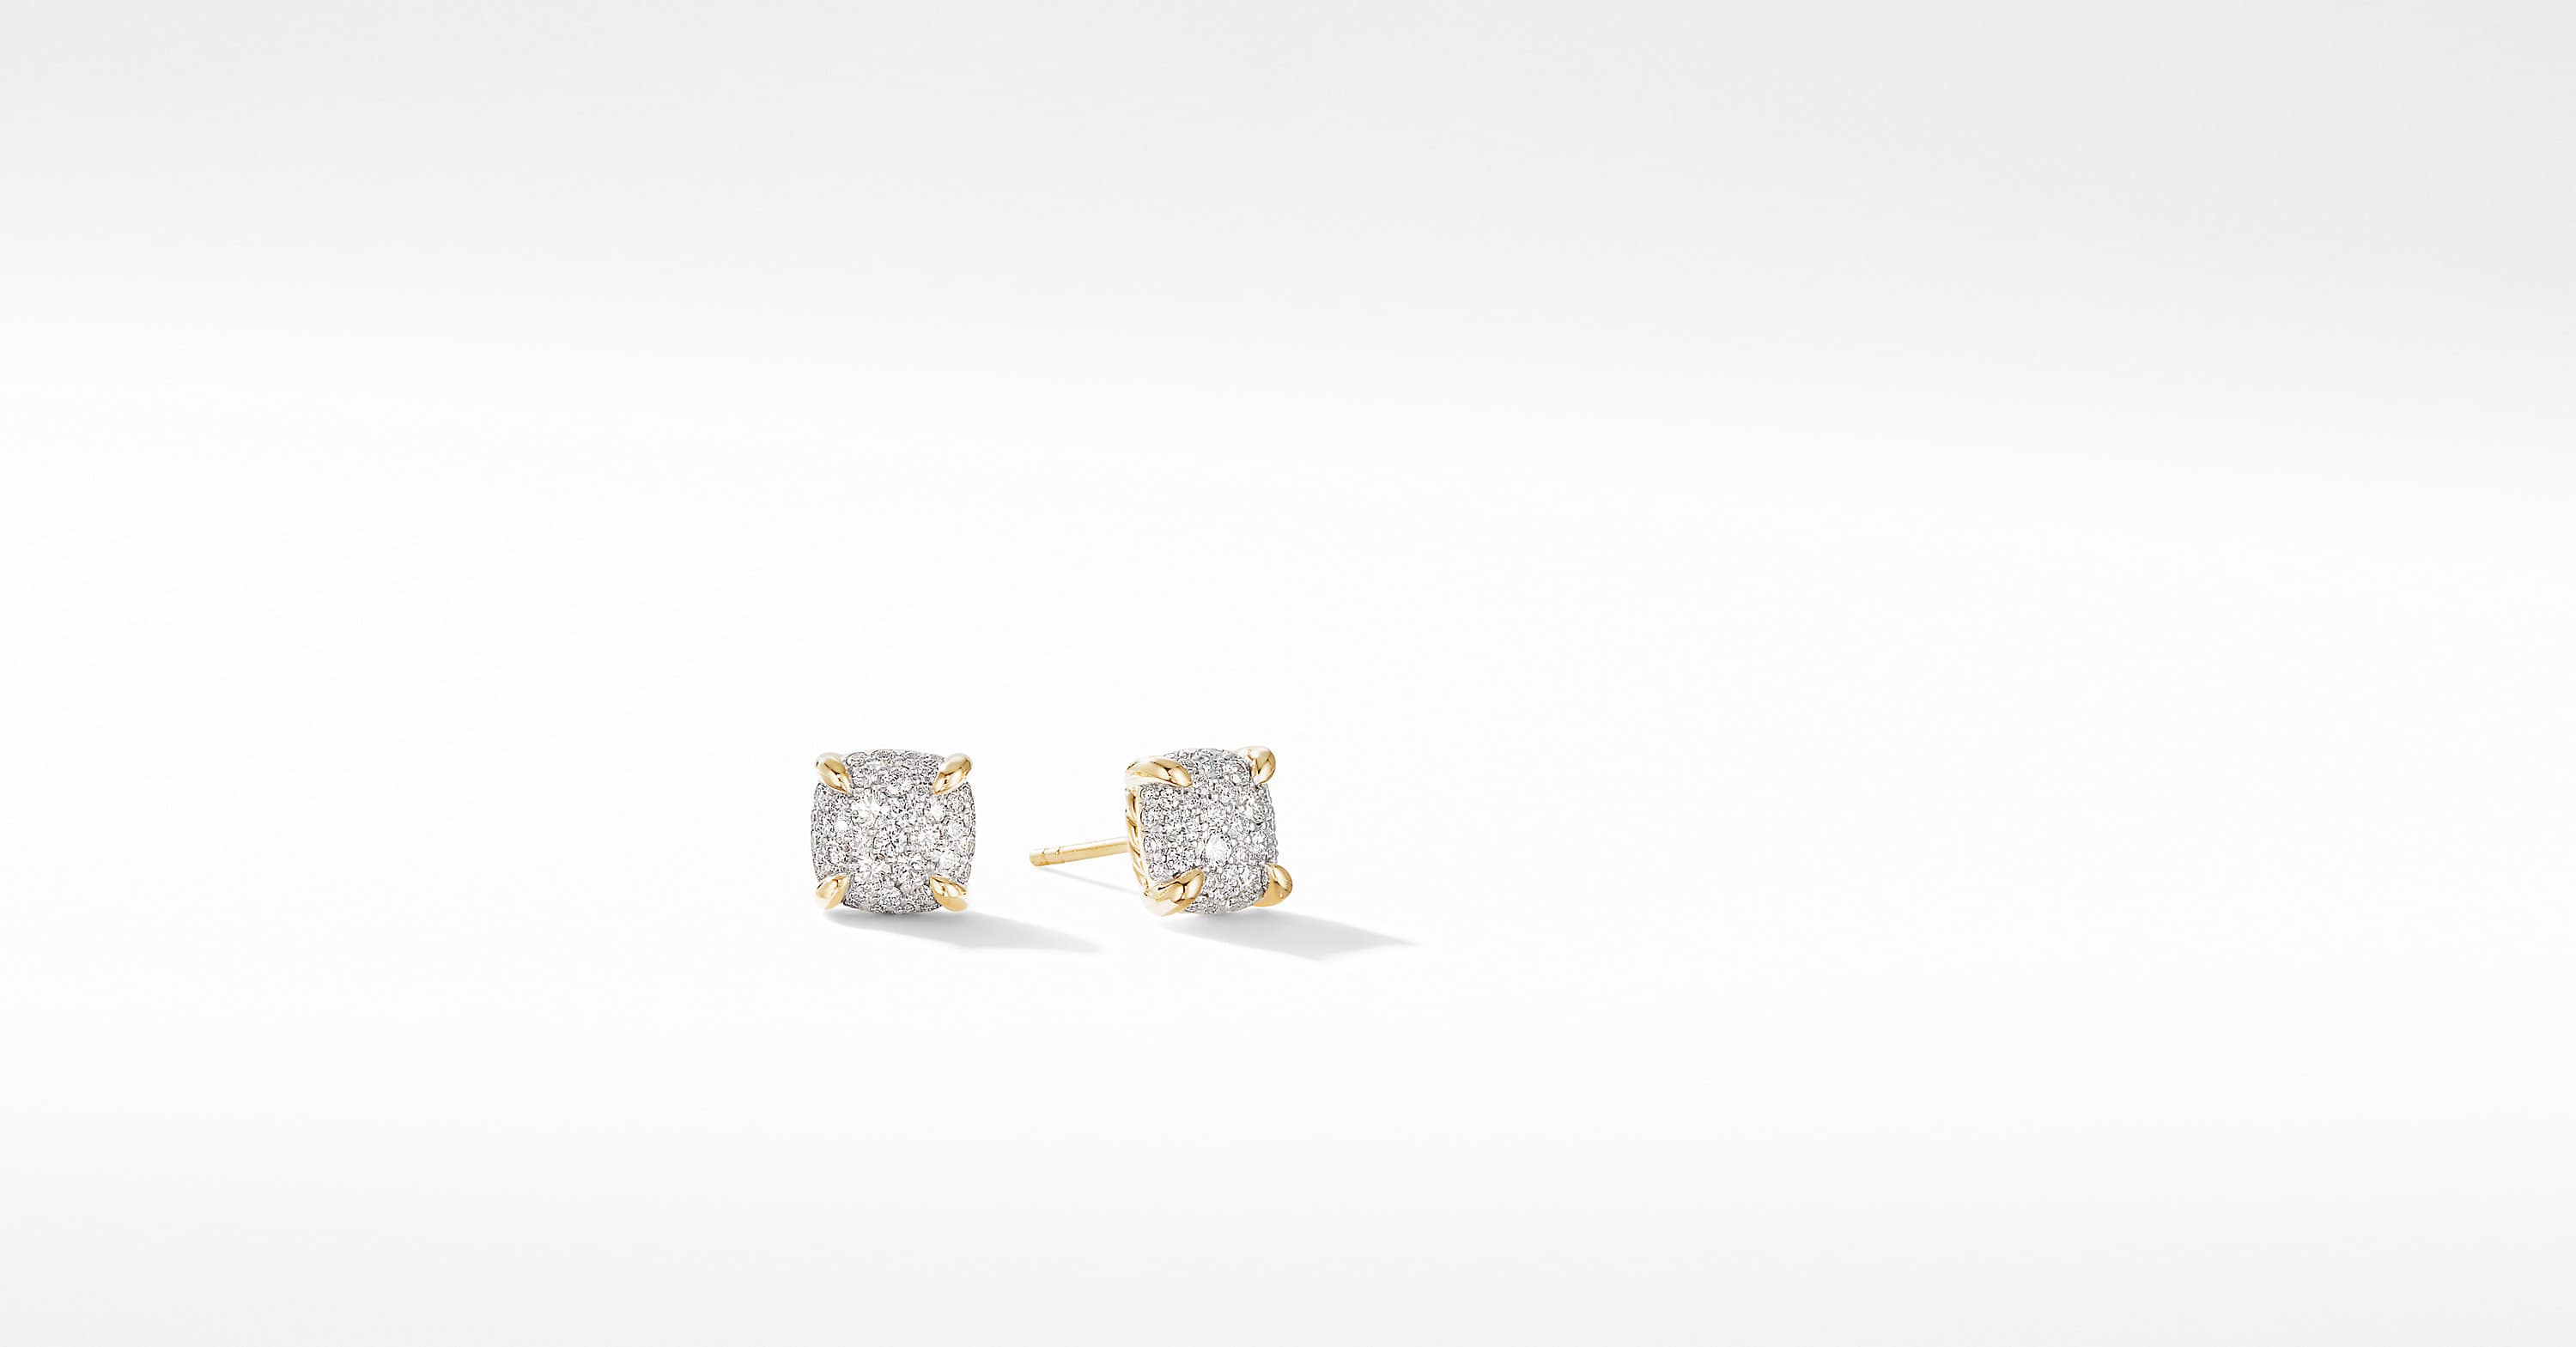 Chatelaine Stud Earrings in 18K Yellow Gold with Full Pavé, 8mm